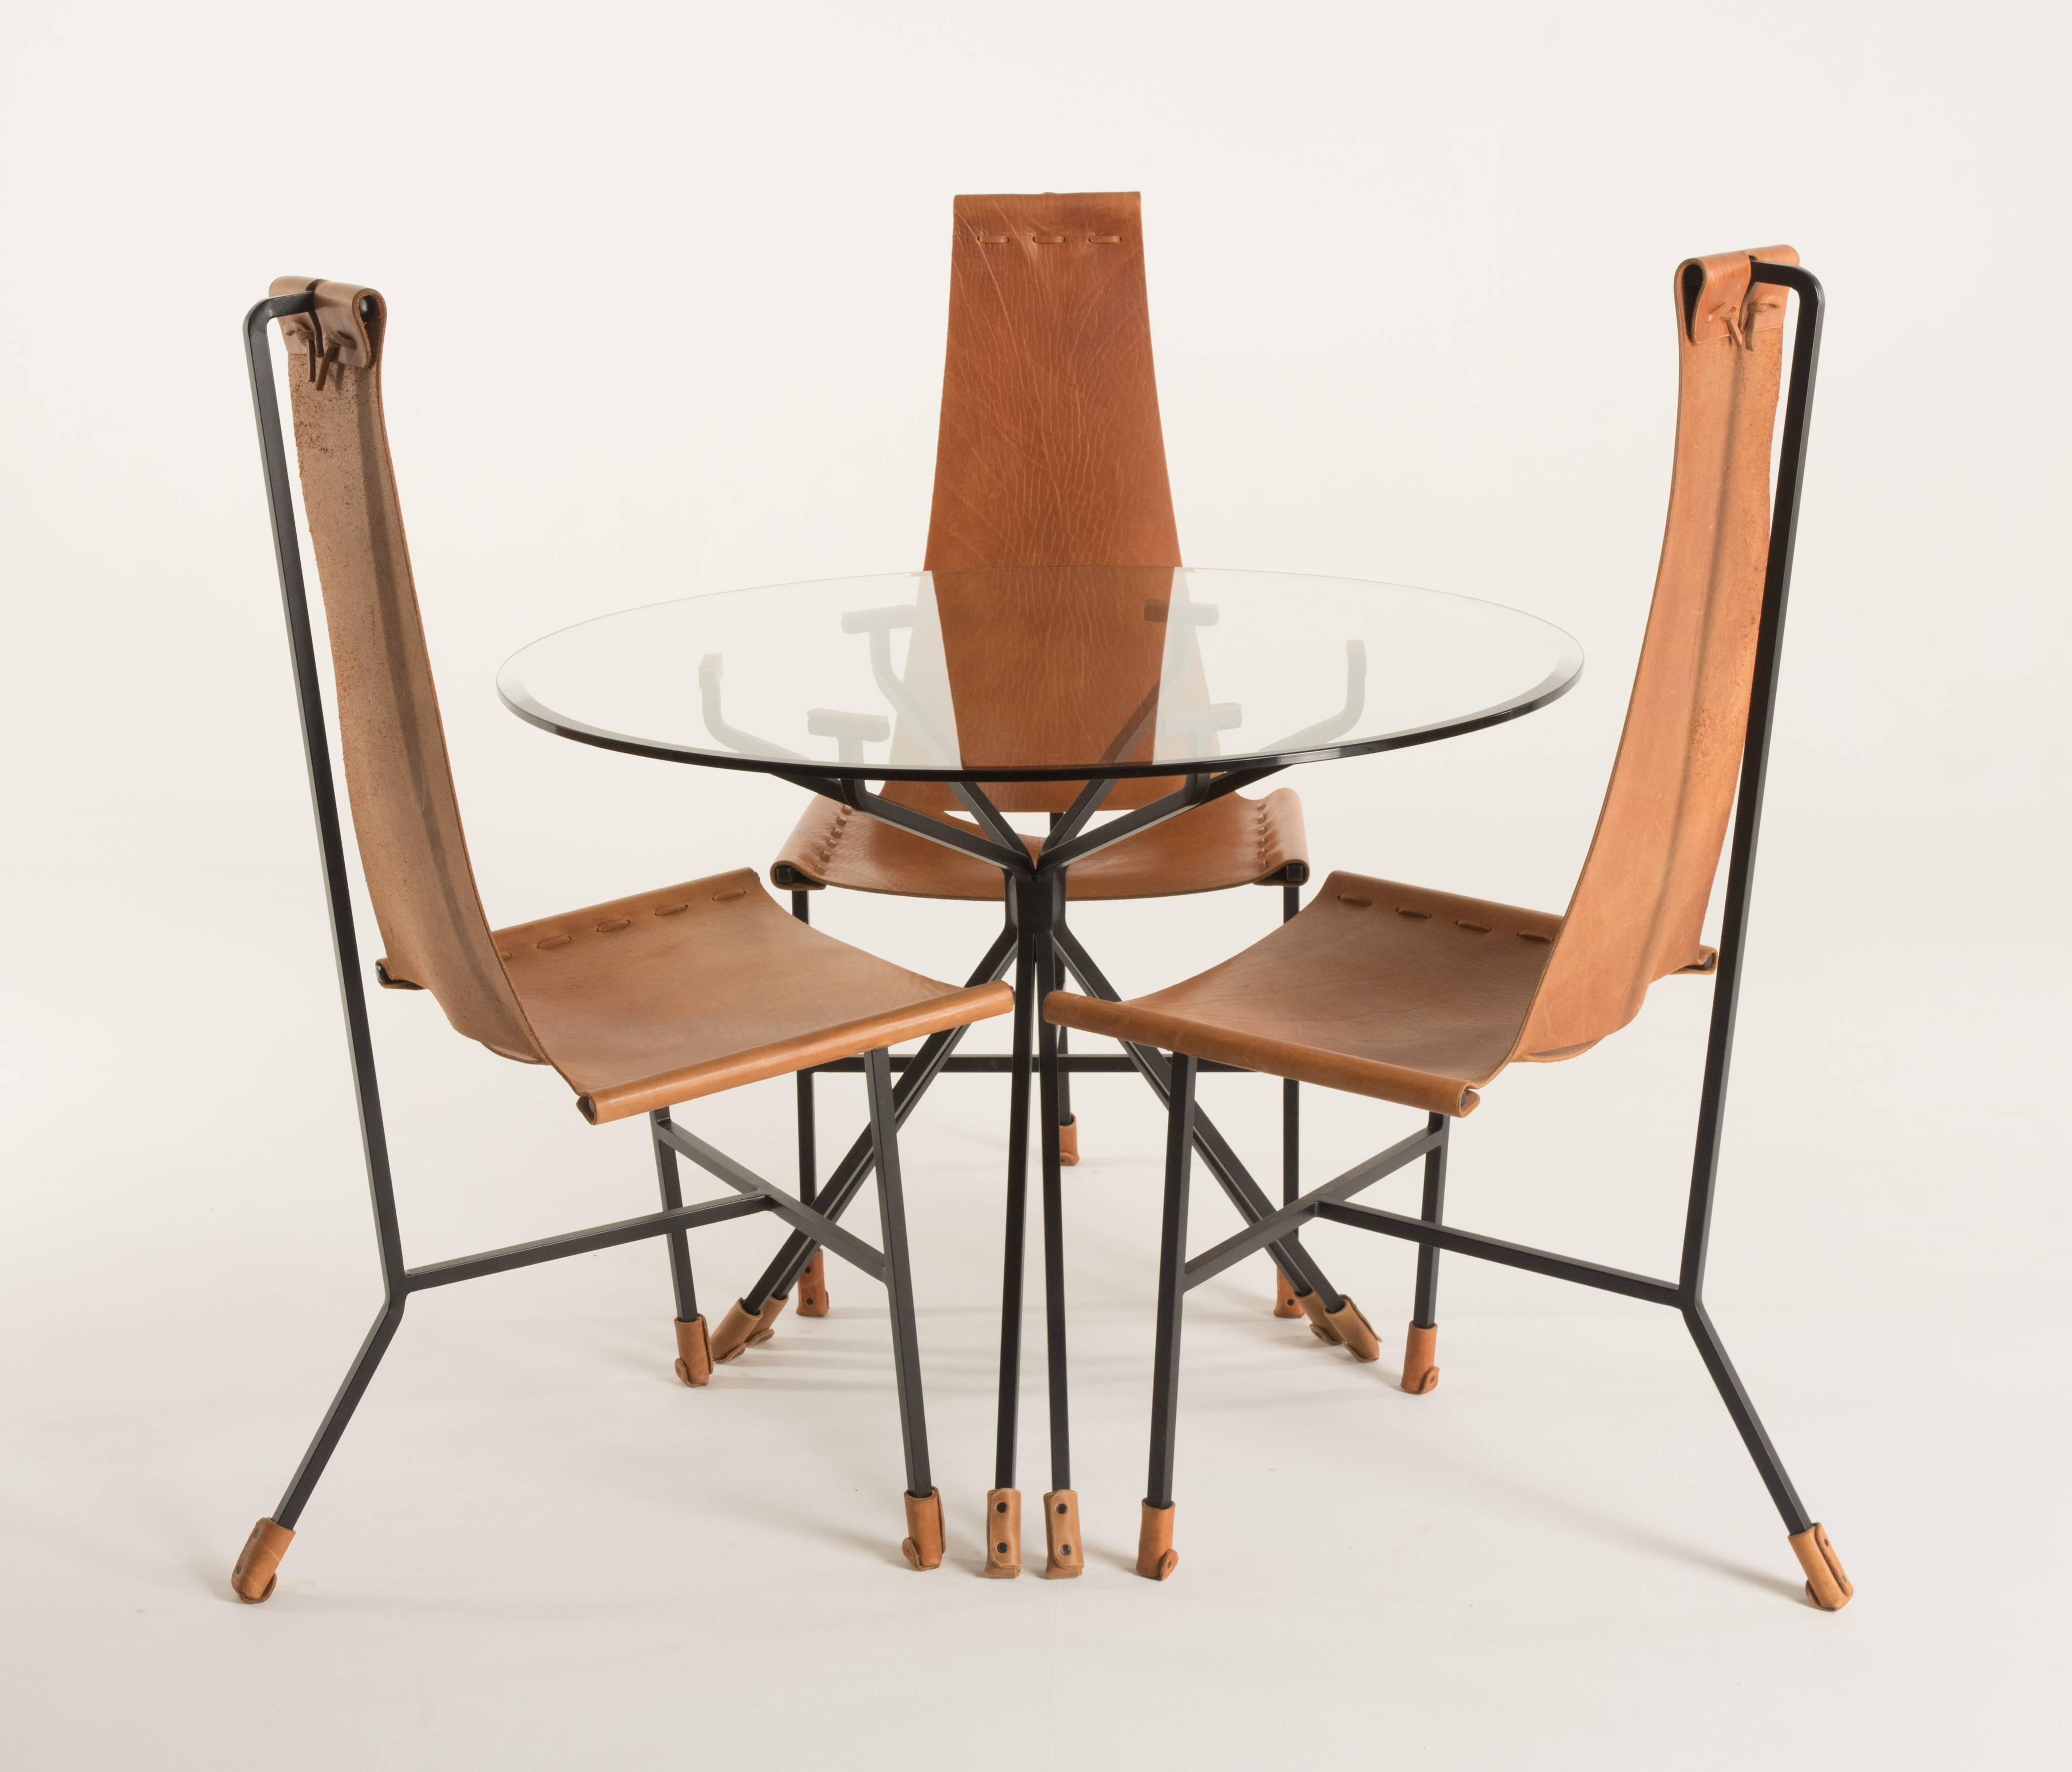 Here We Offer A Set Of Three Dan Wenger Designs Dining Chairs And Glass Top  Table